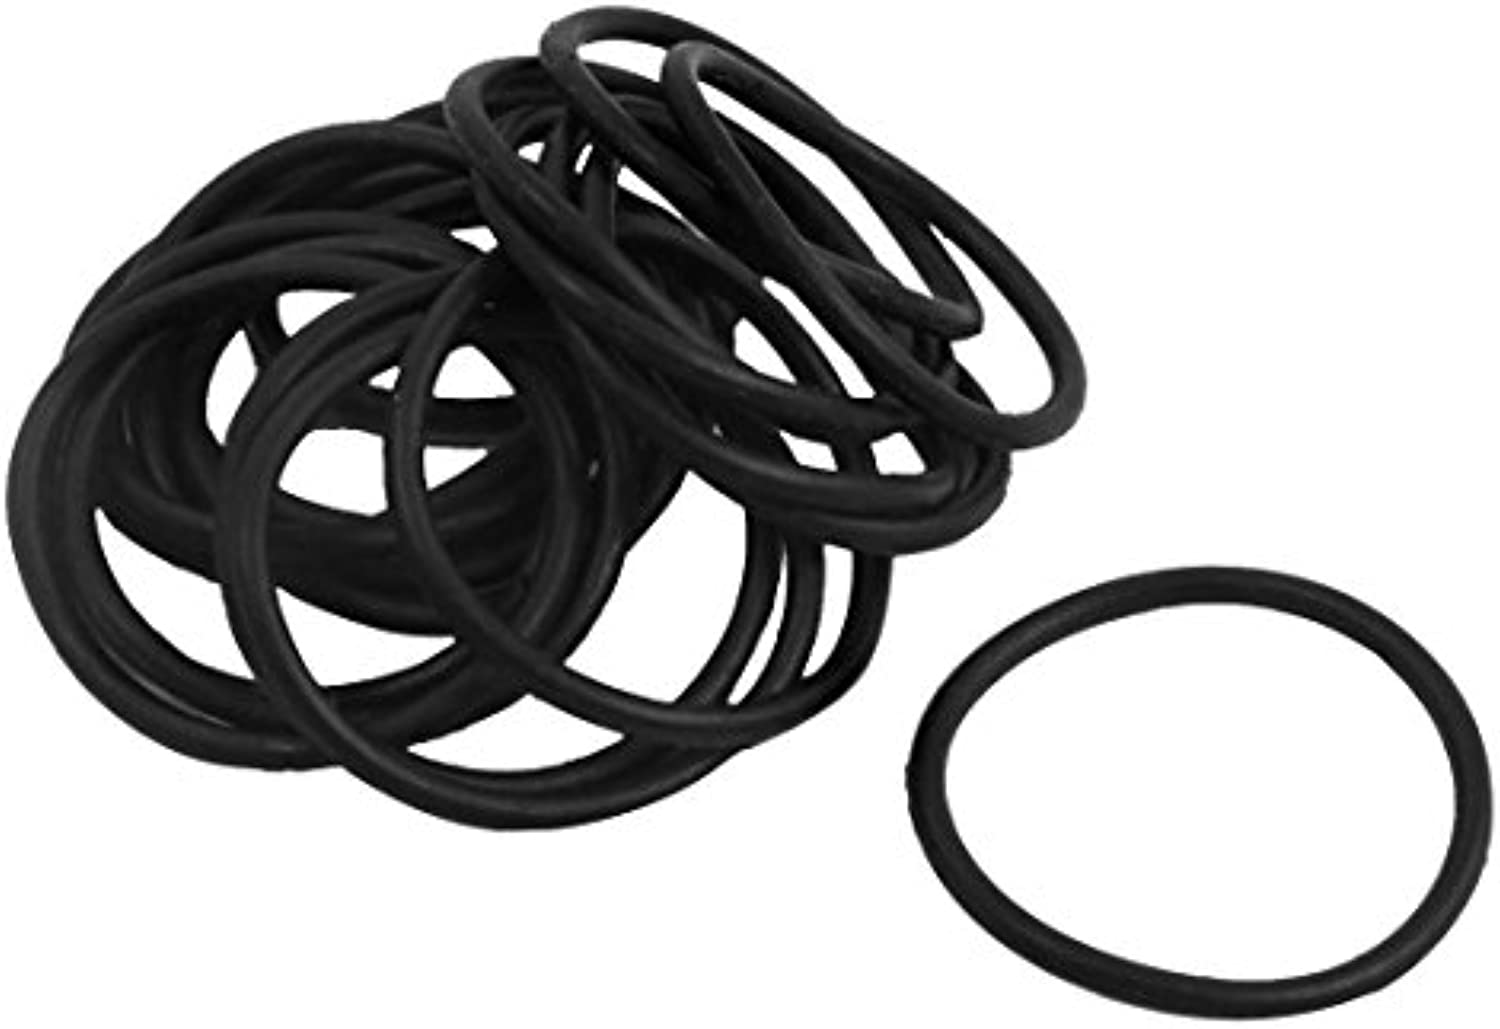 20pcs Métricas 27.2mm OD 1.8mm grueso Industrial Rubber O Ring Sello Negro